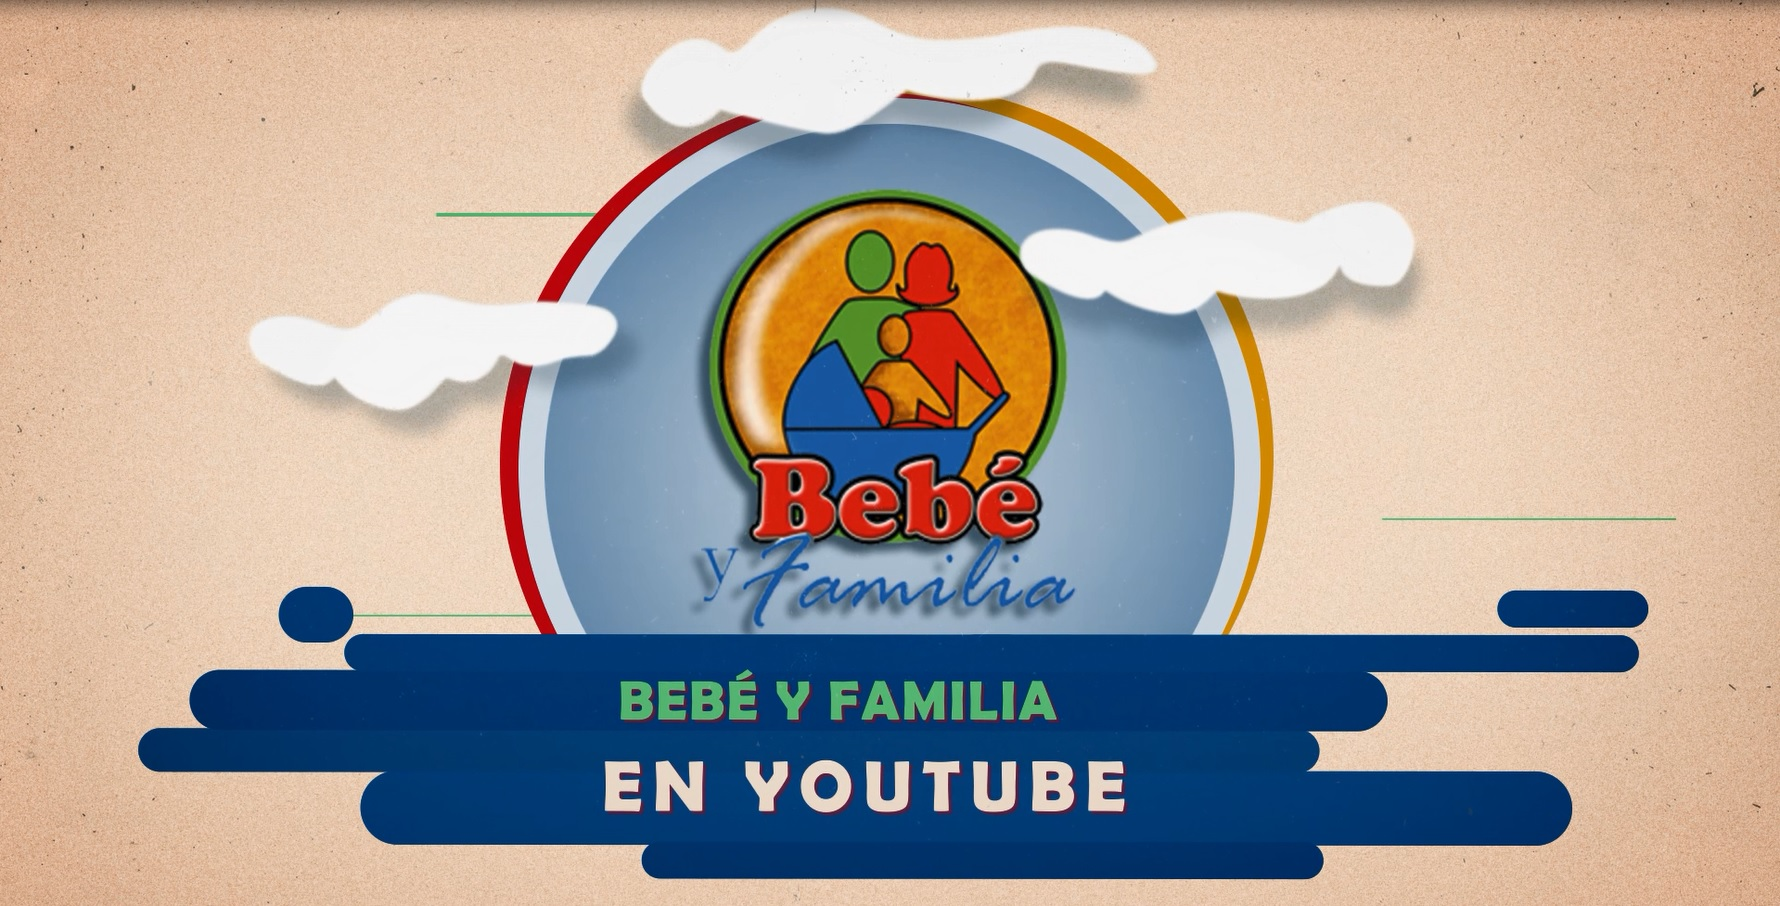 Bebé y Familia en Youtube